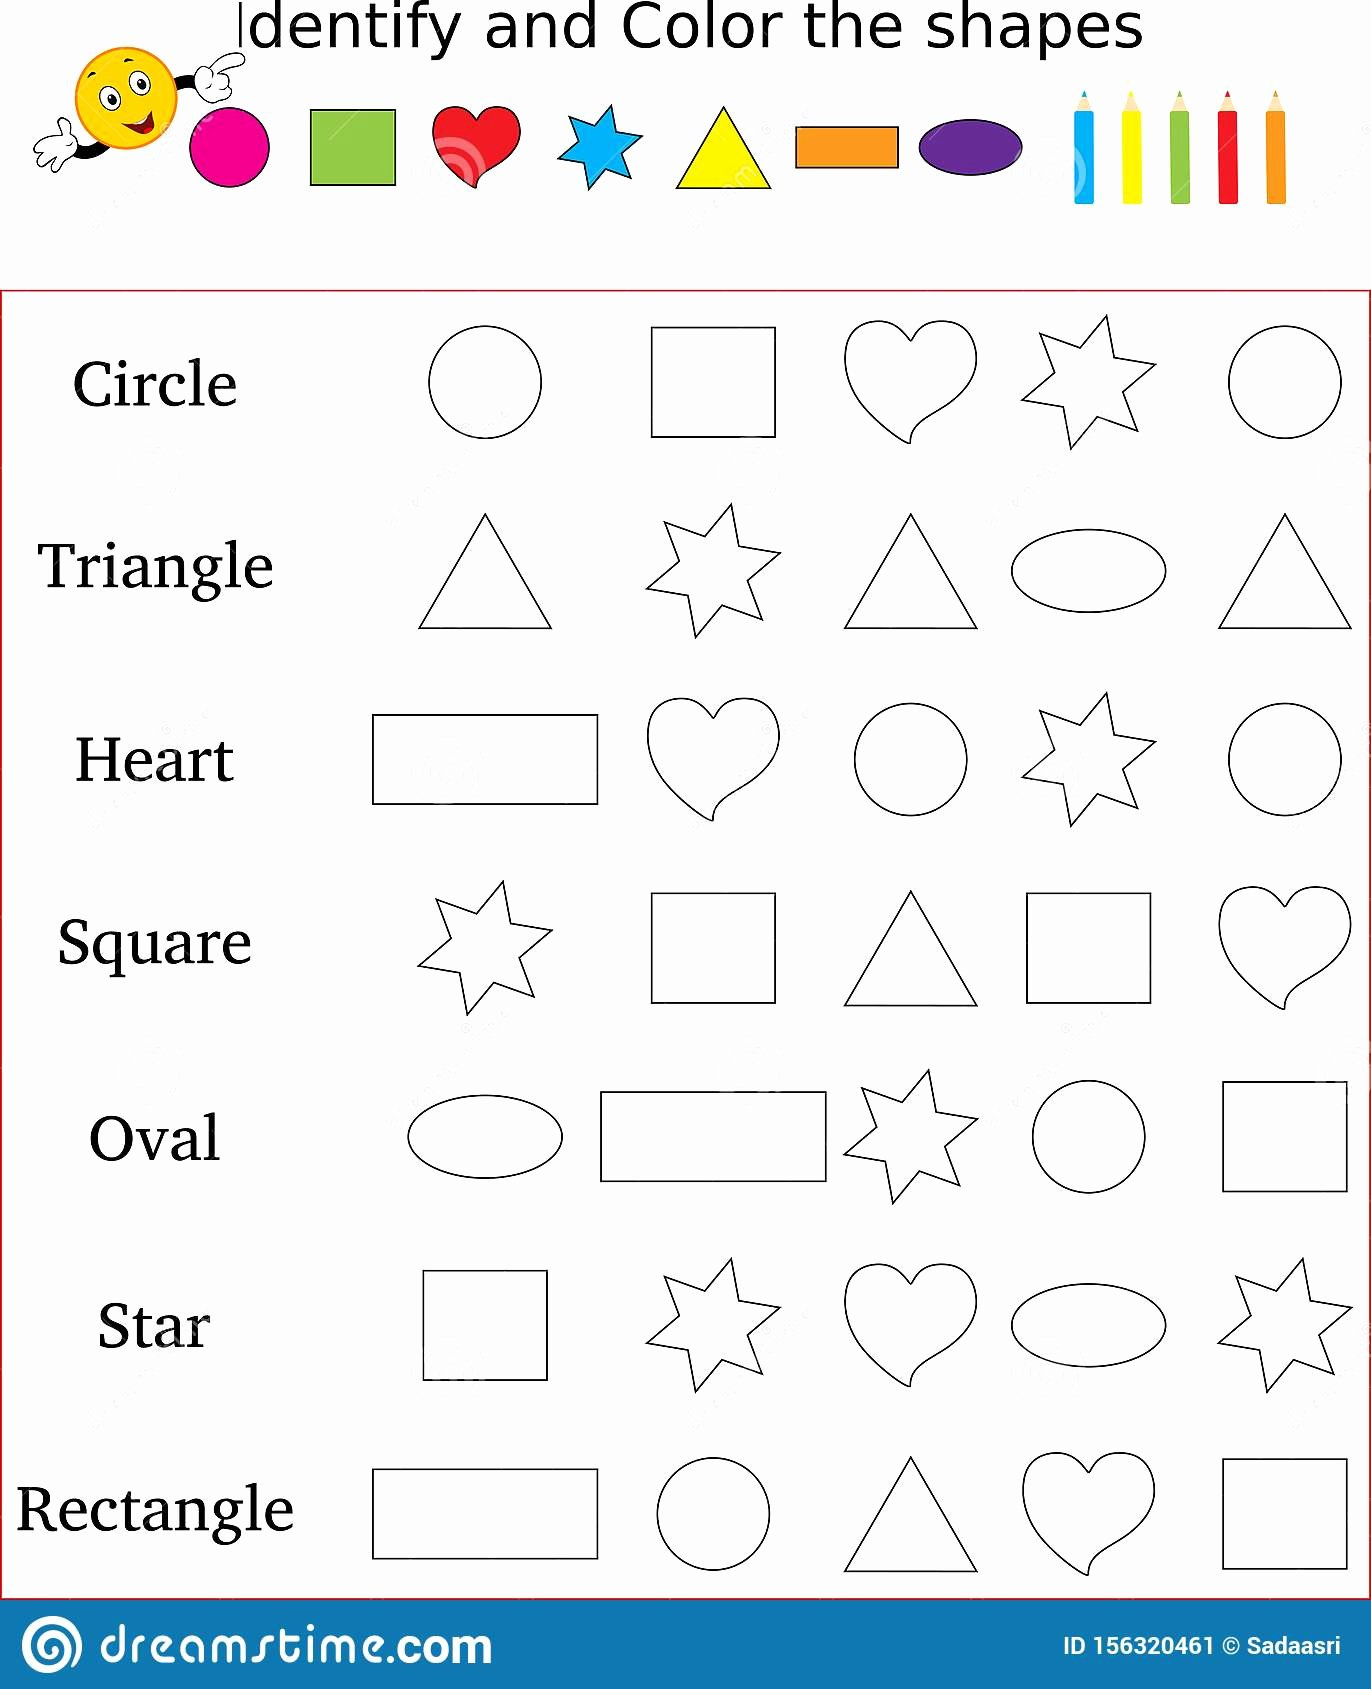 Printable Shapes Worksheets for Preschoolers Lovely Identify and Color the Correct Shape Worksheet Stock Image